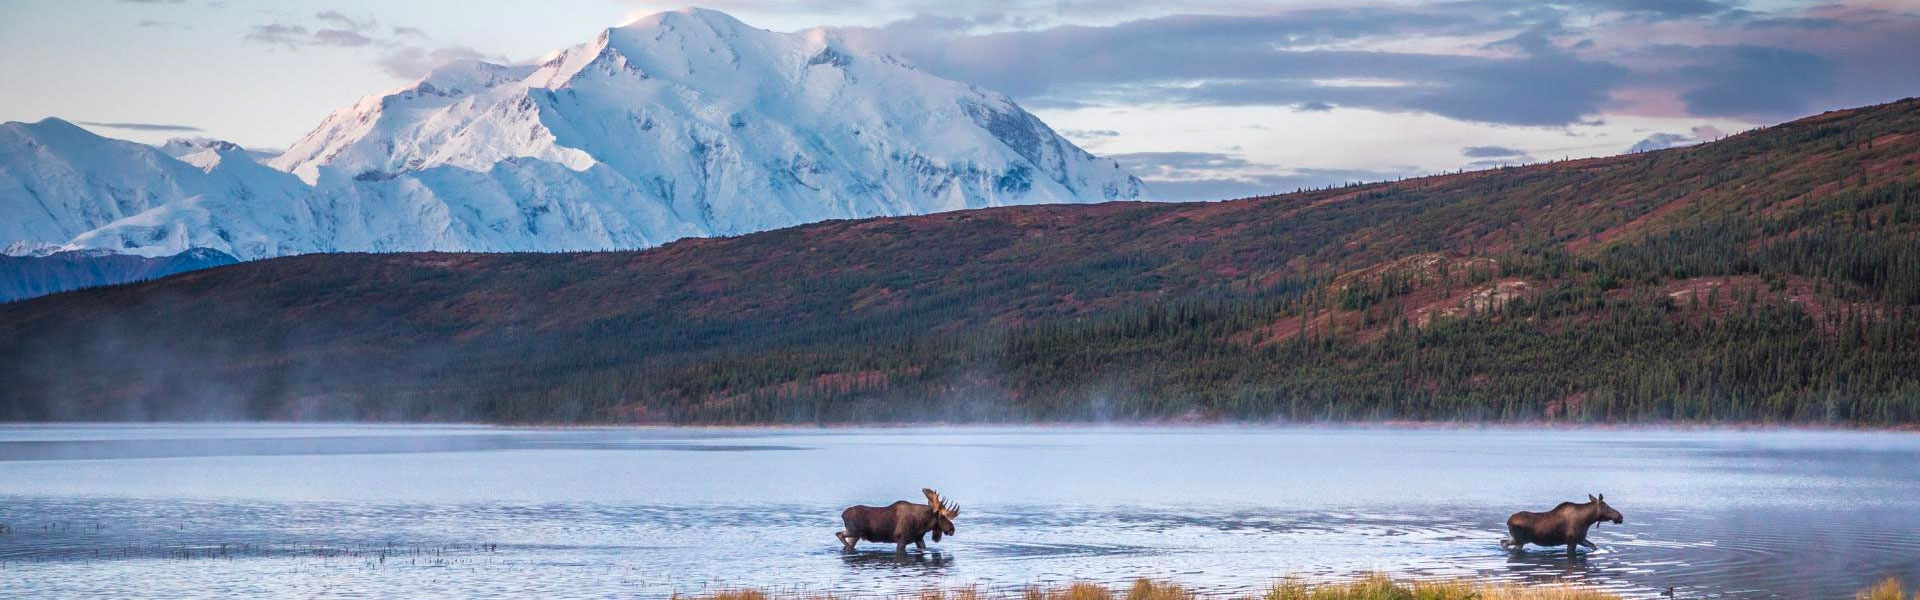 Denali National Park Train Tours